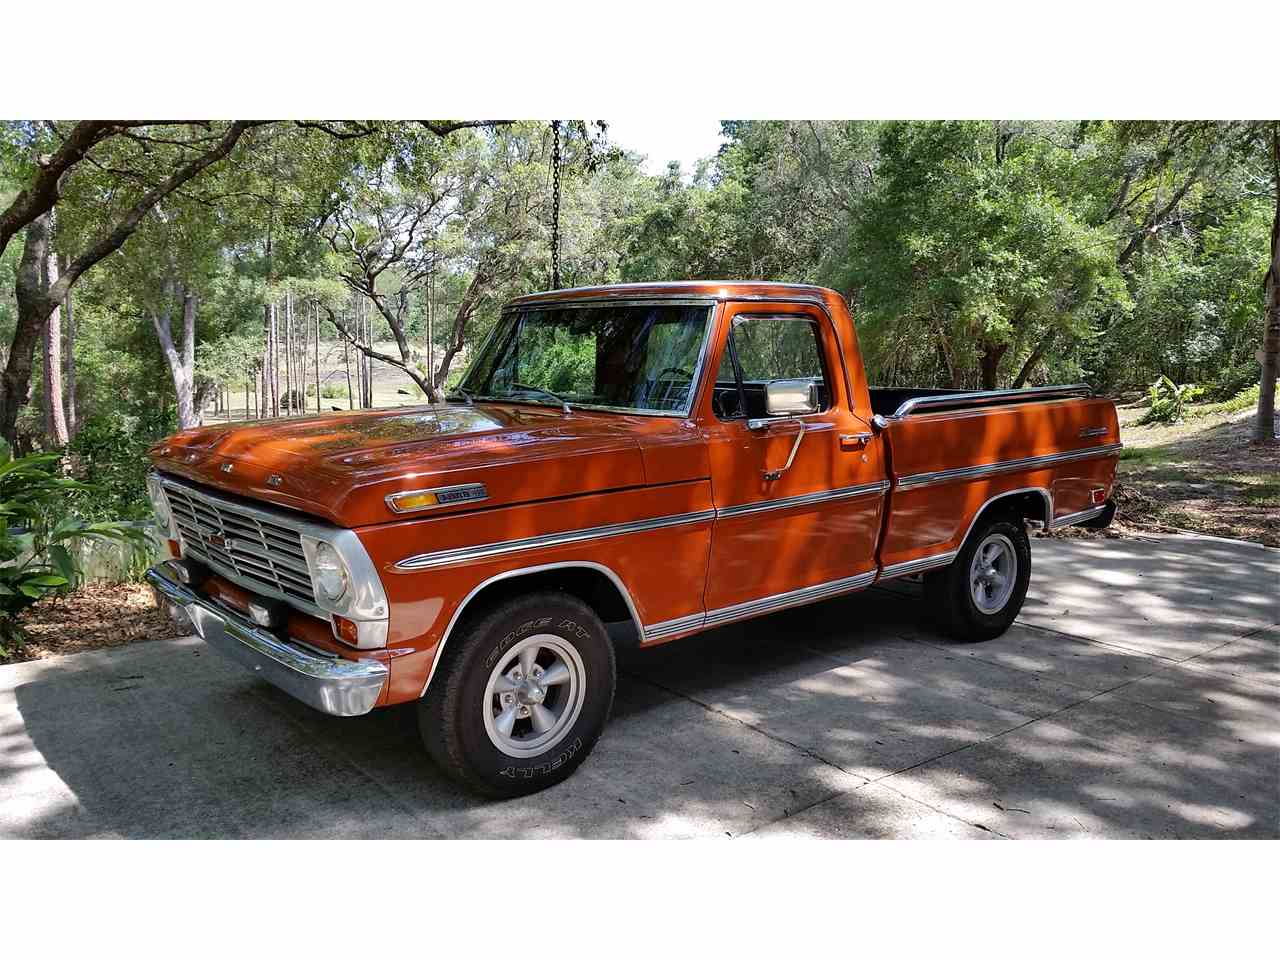 1968 Ford Truck Vin Decoder 1 - Ford F - 1968 Ford Truck Vin Decoder 1